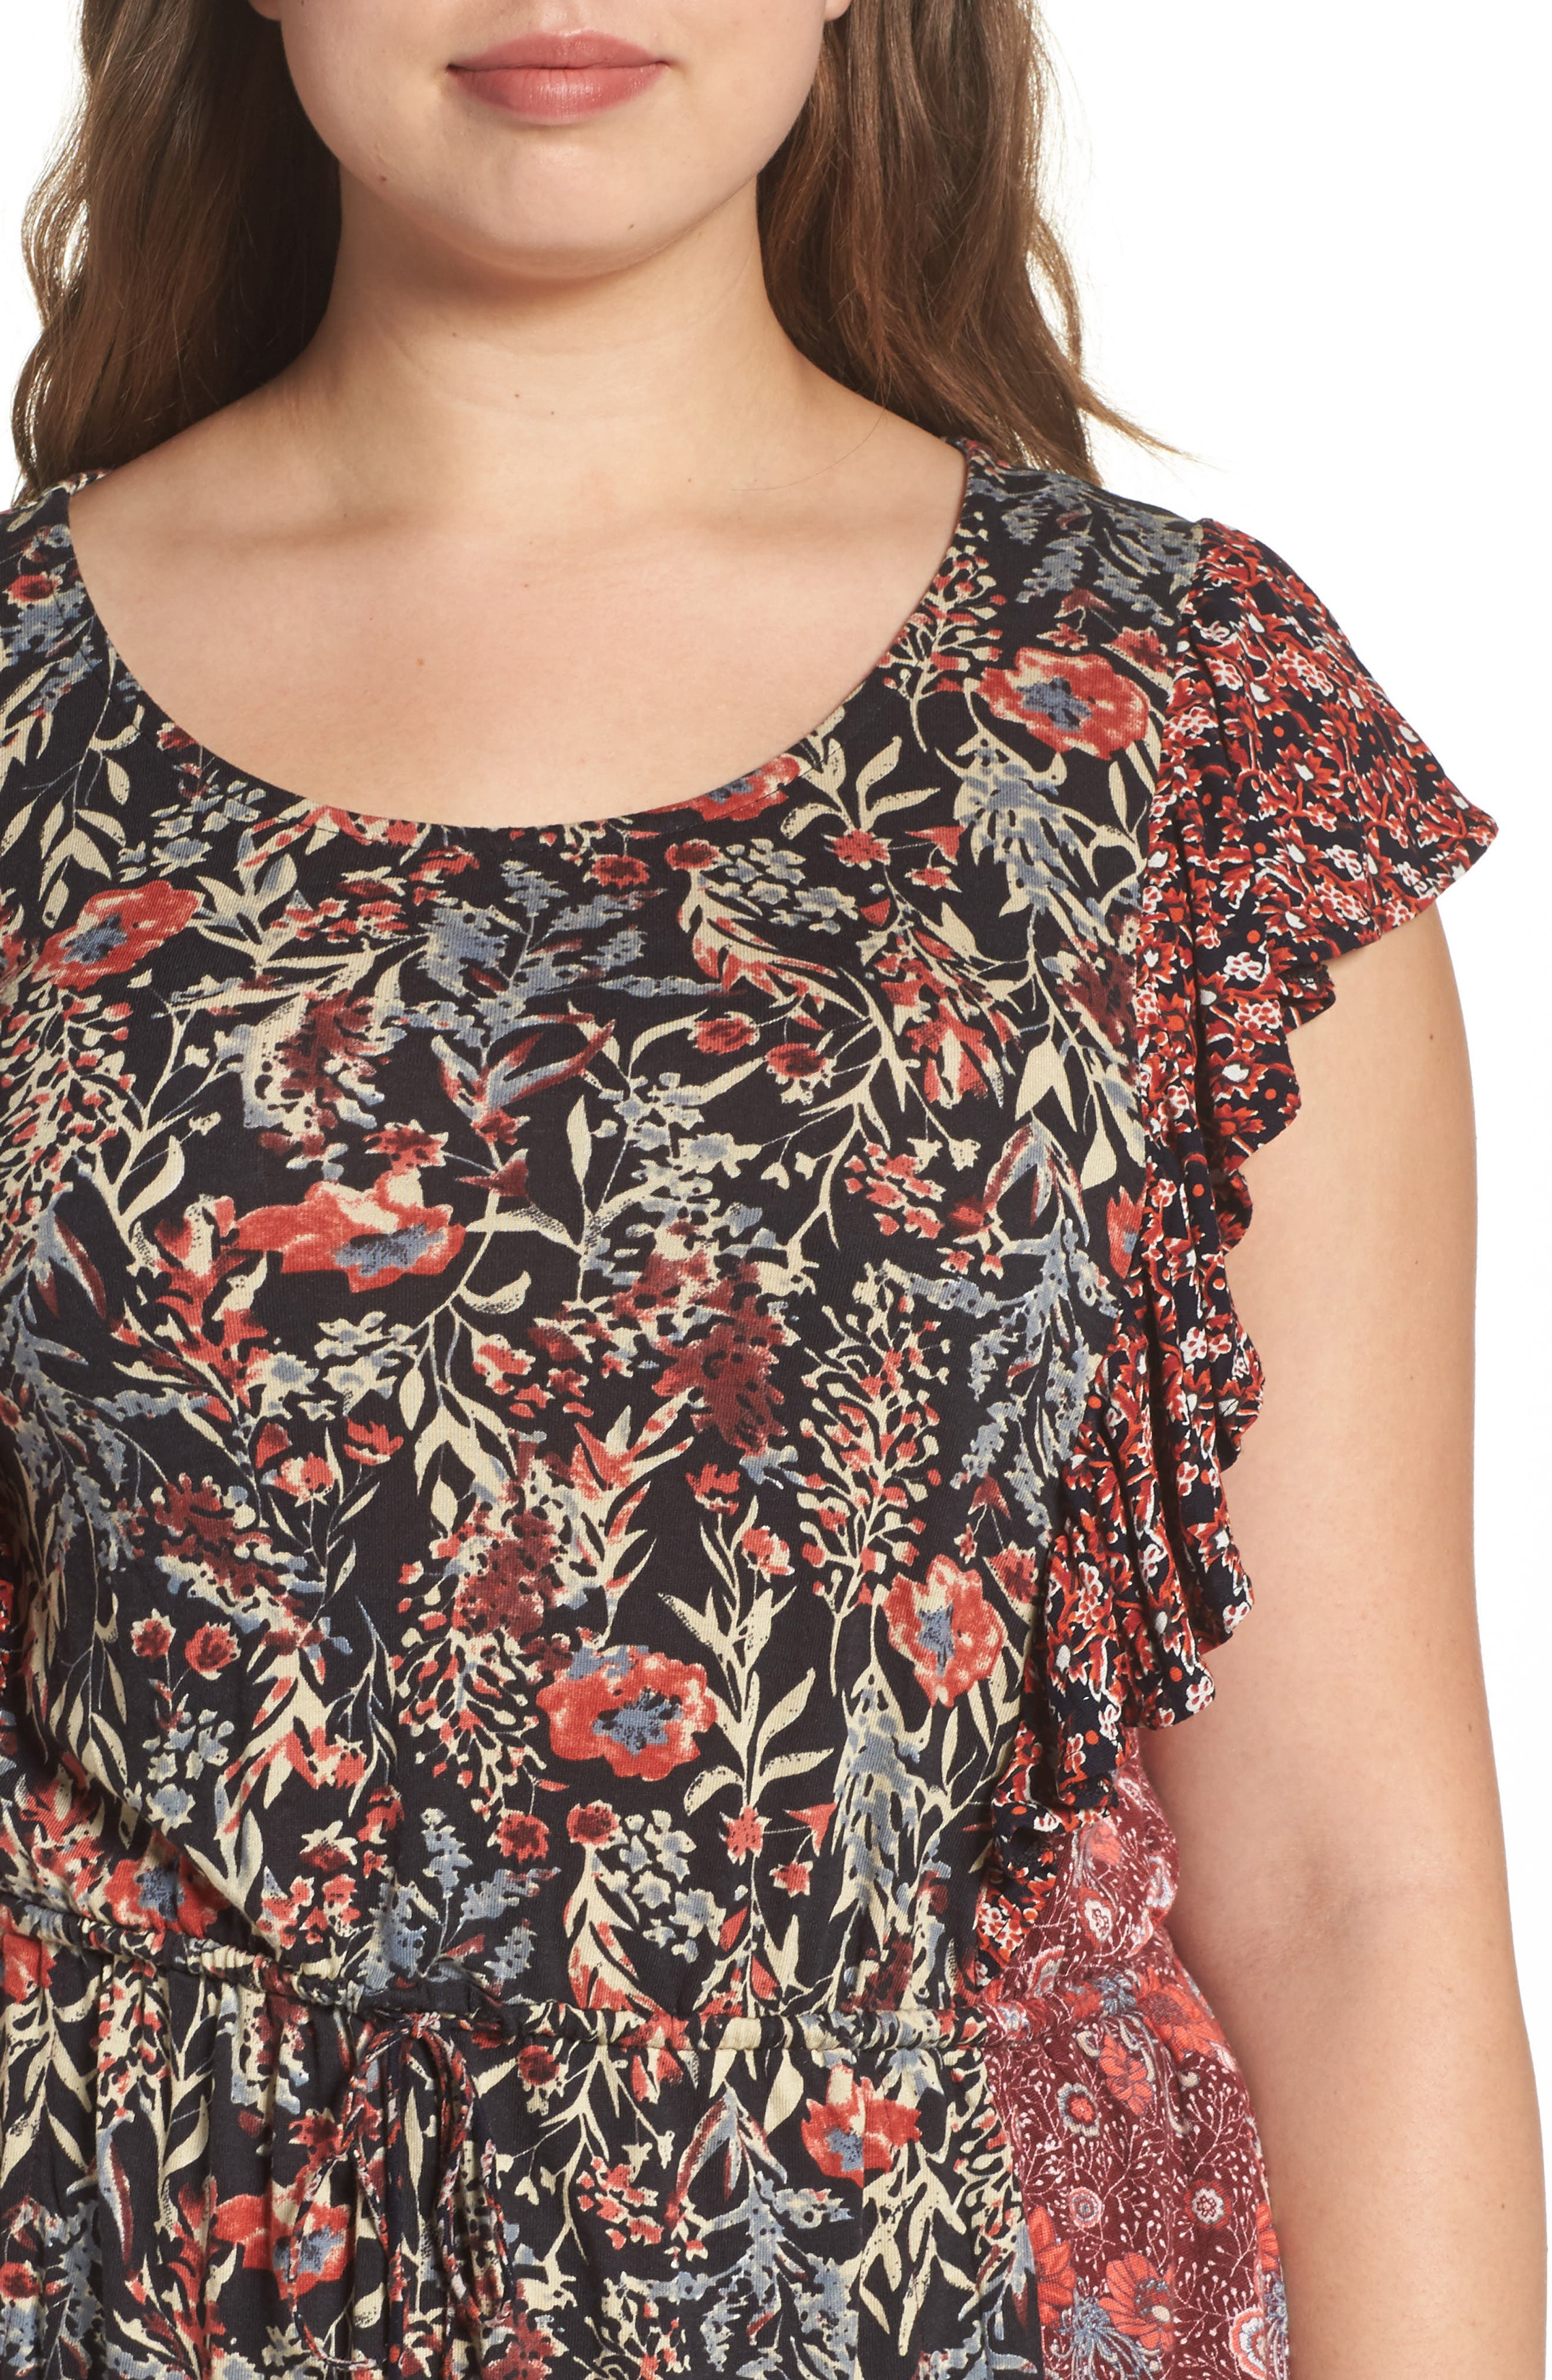 Mixed Floral Print Dress,                             Alternate thumbnail 4, color,                             640